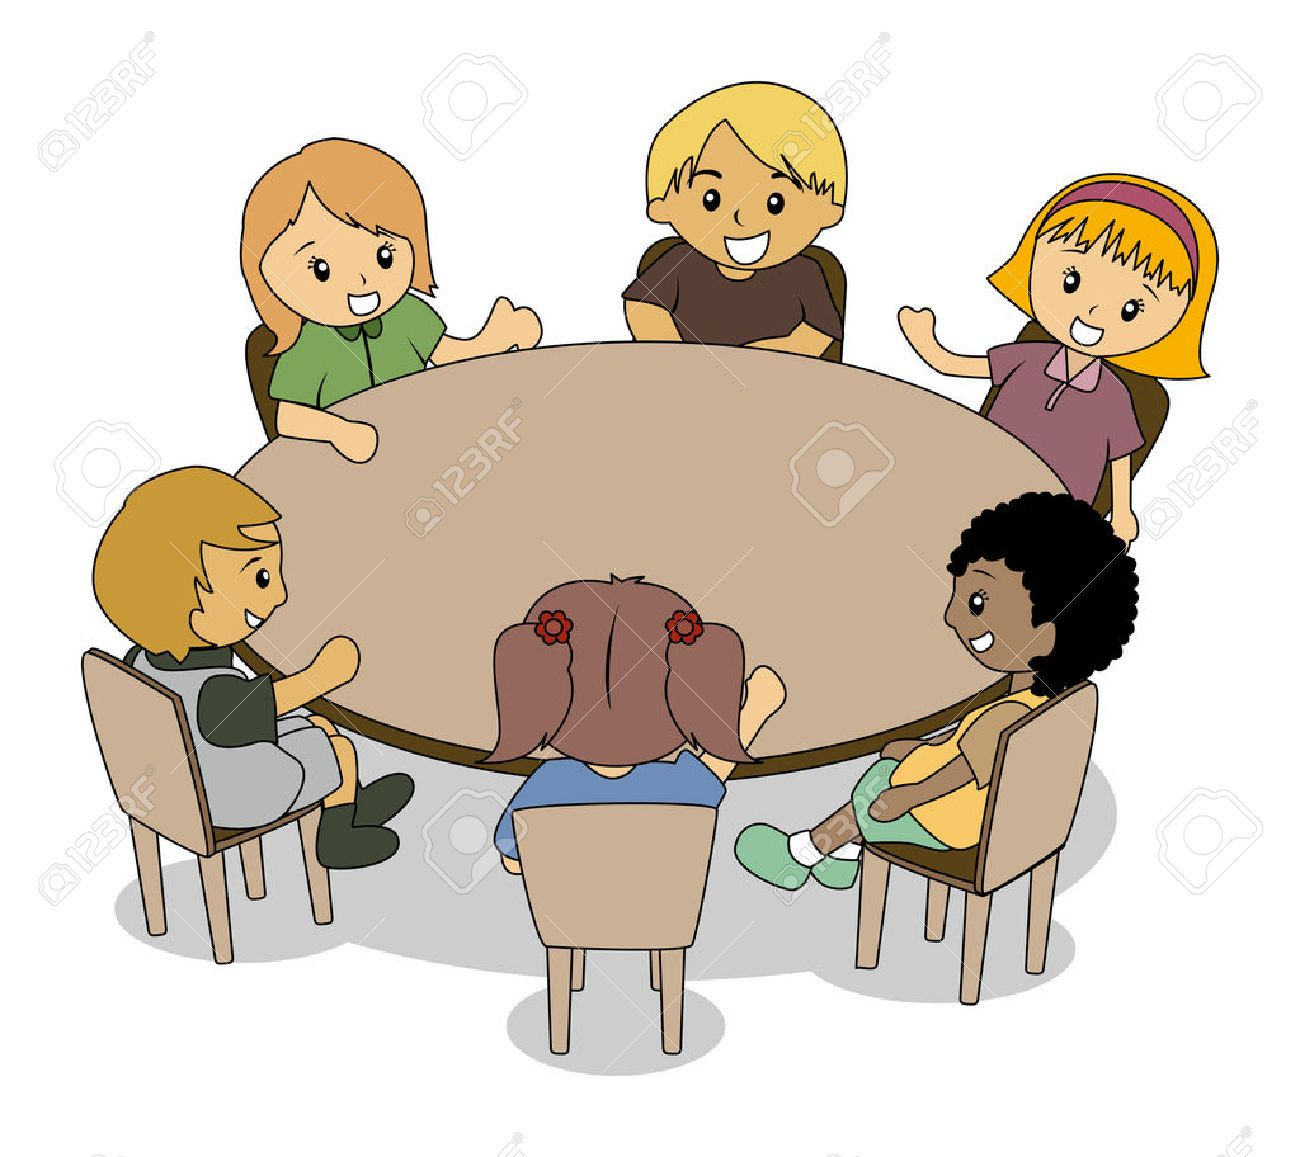 Table work clipart jpg library stock Table work clipart 4 » Clipart Portal jpg library stock